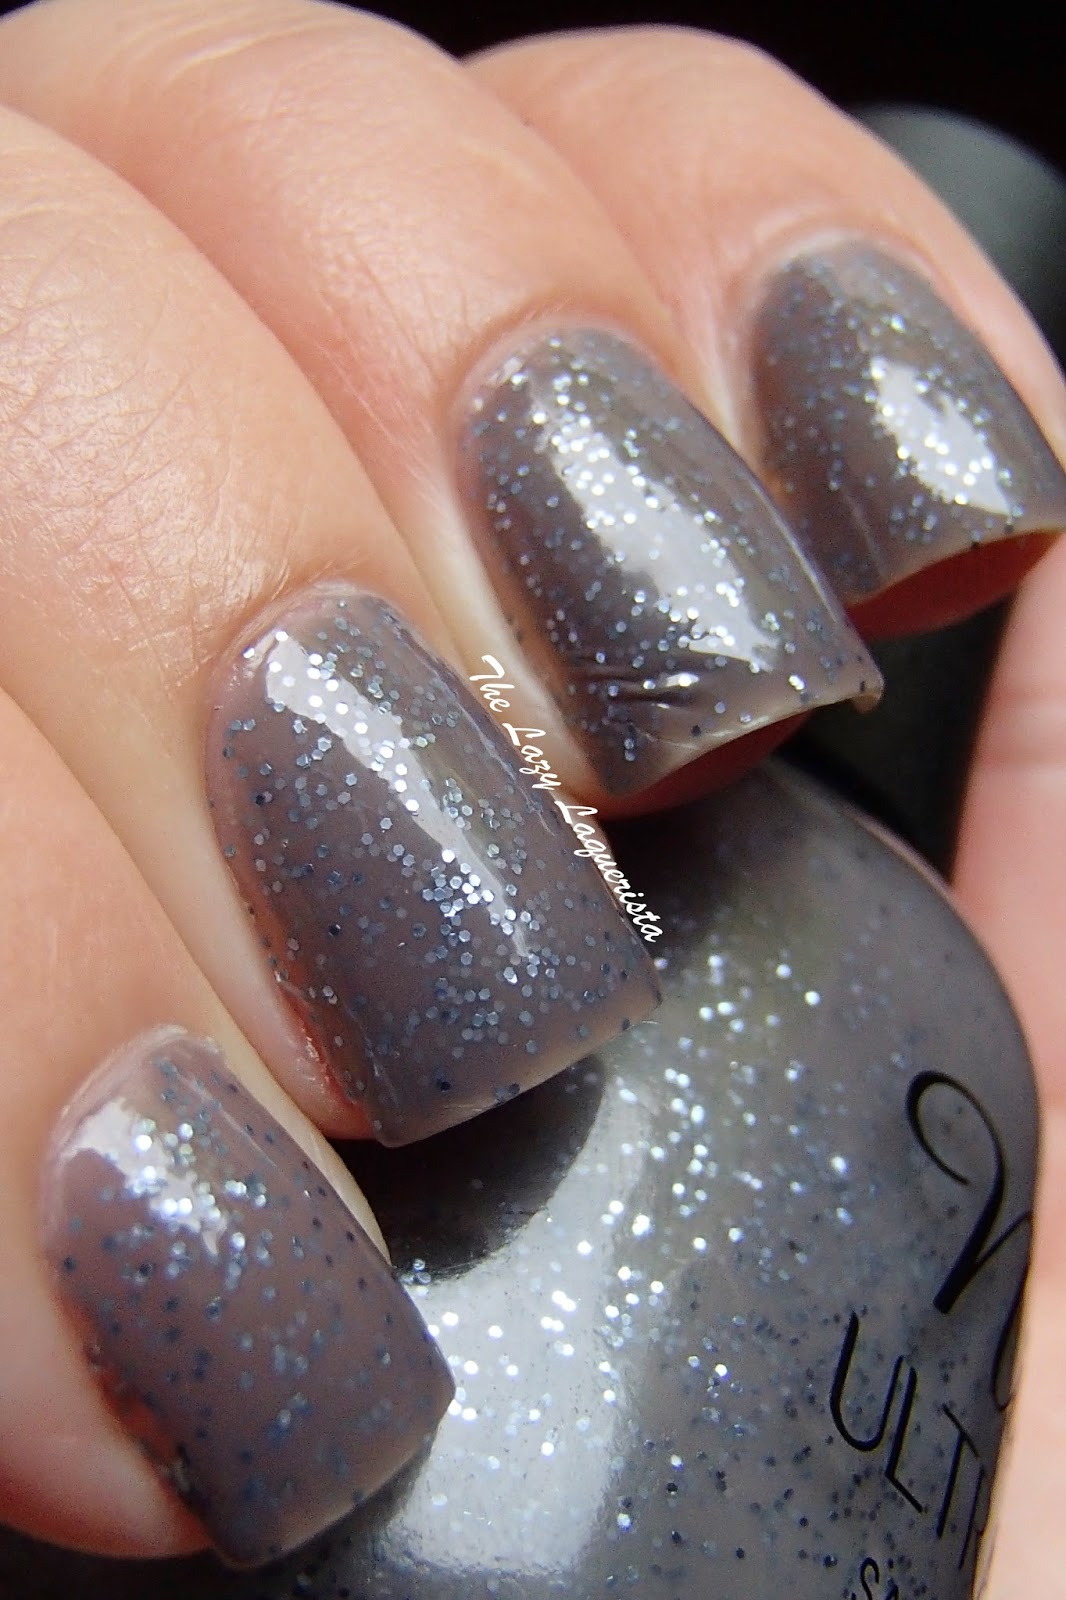 Fancy Nina Nail Polish Embellishment - Nail Art Ideas - morihati.com